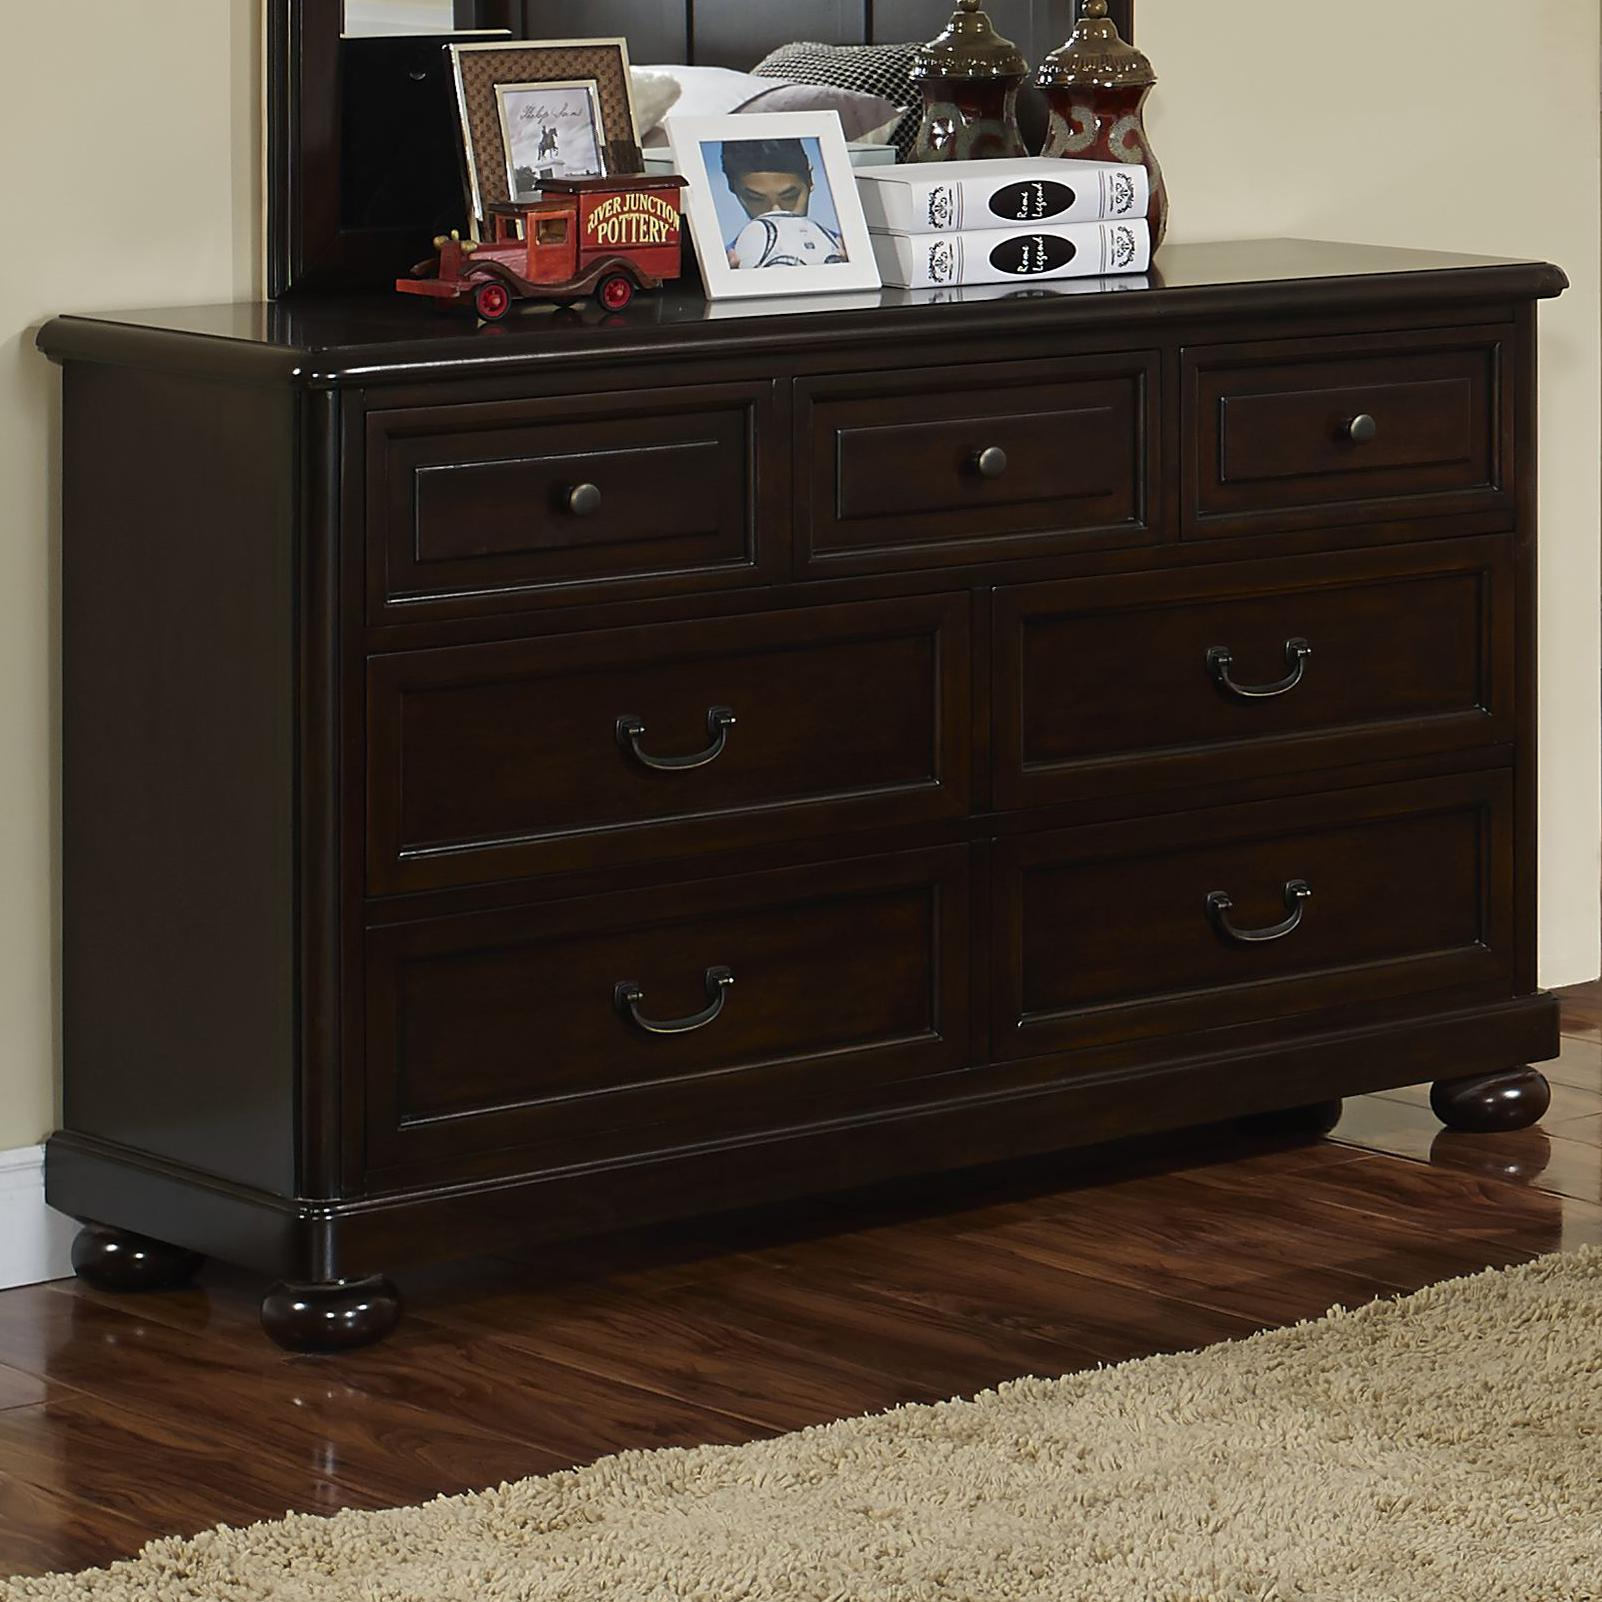 New Classic Canyon Ridge Dresser - Item Number: 05-230-052